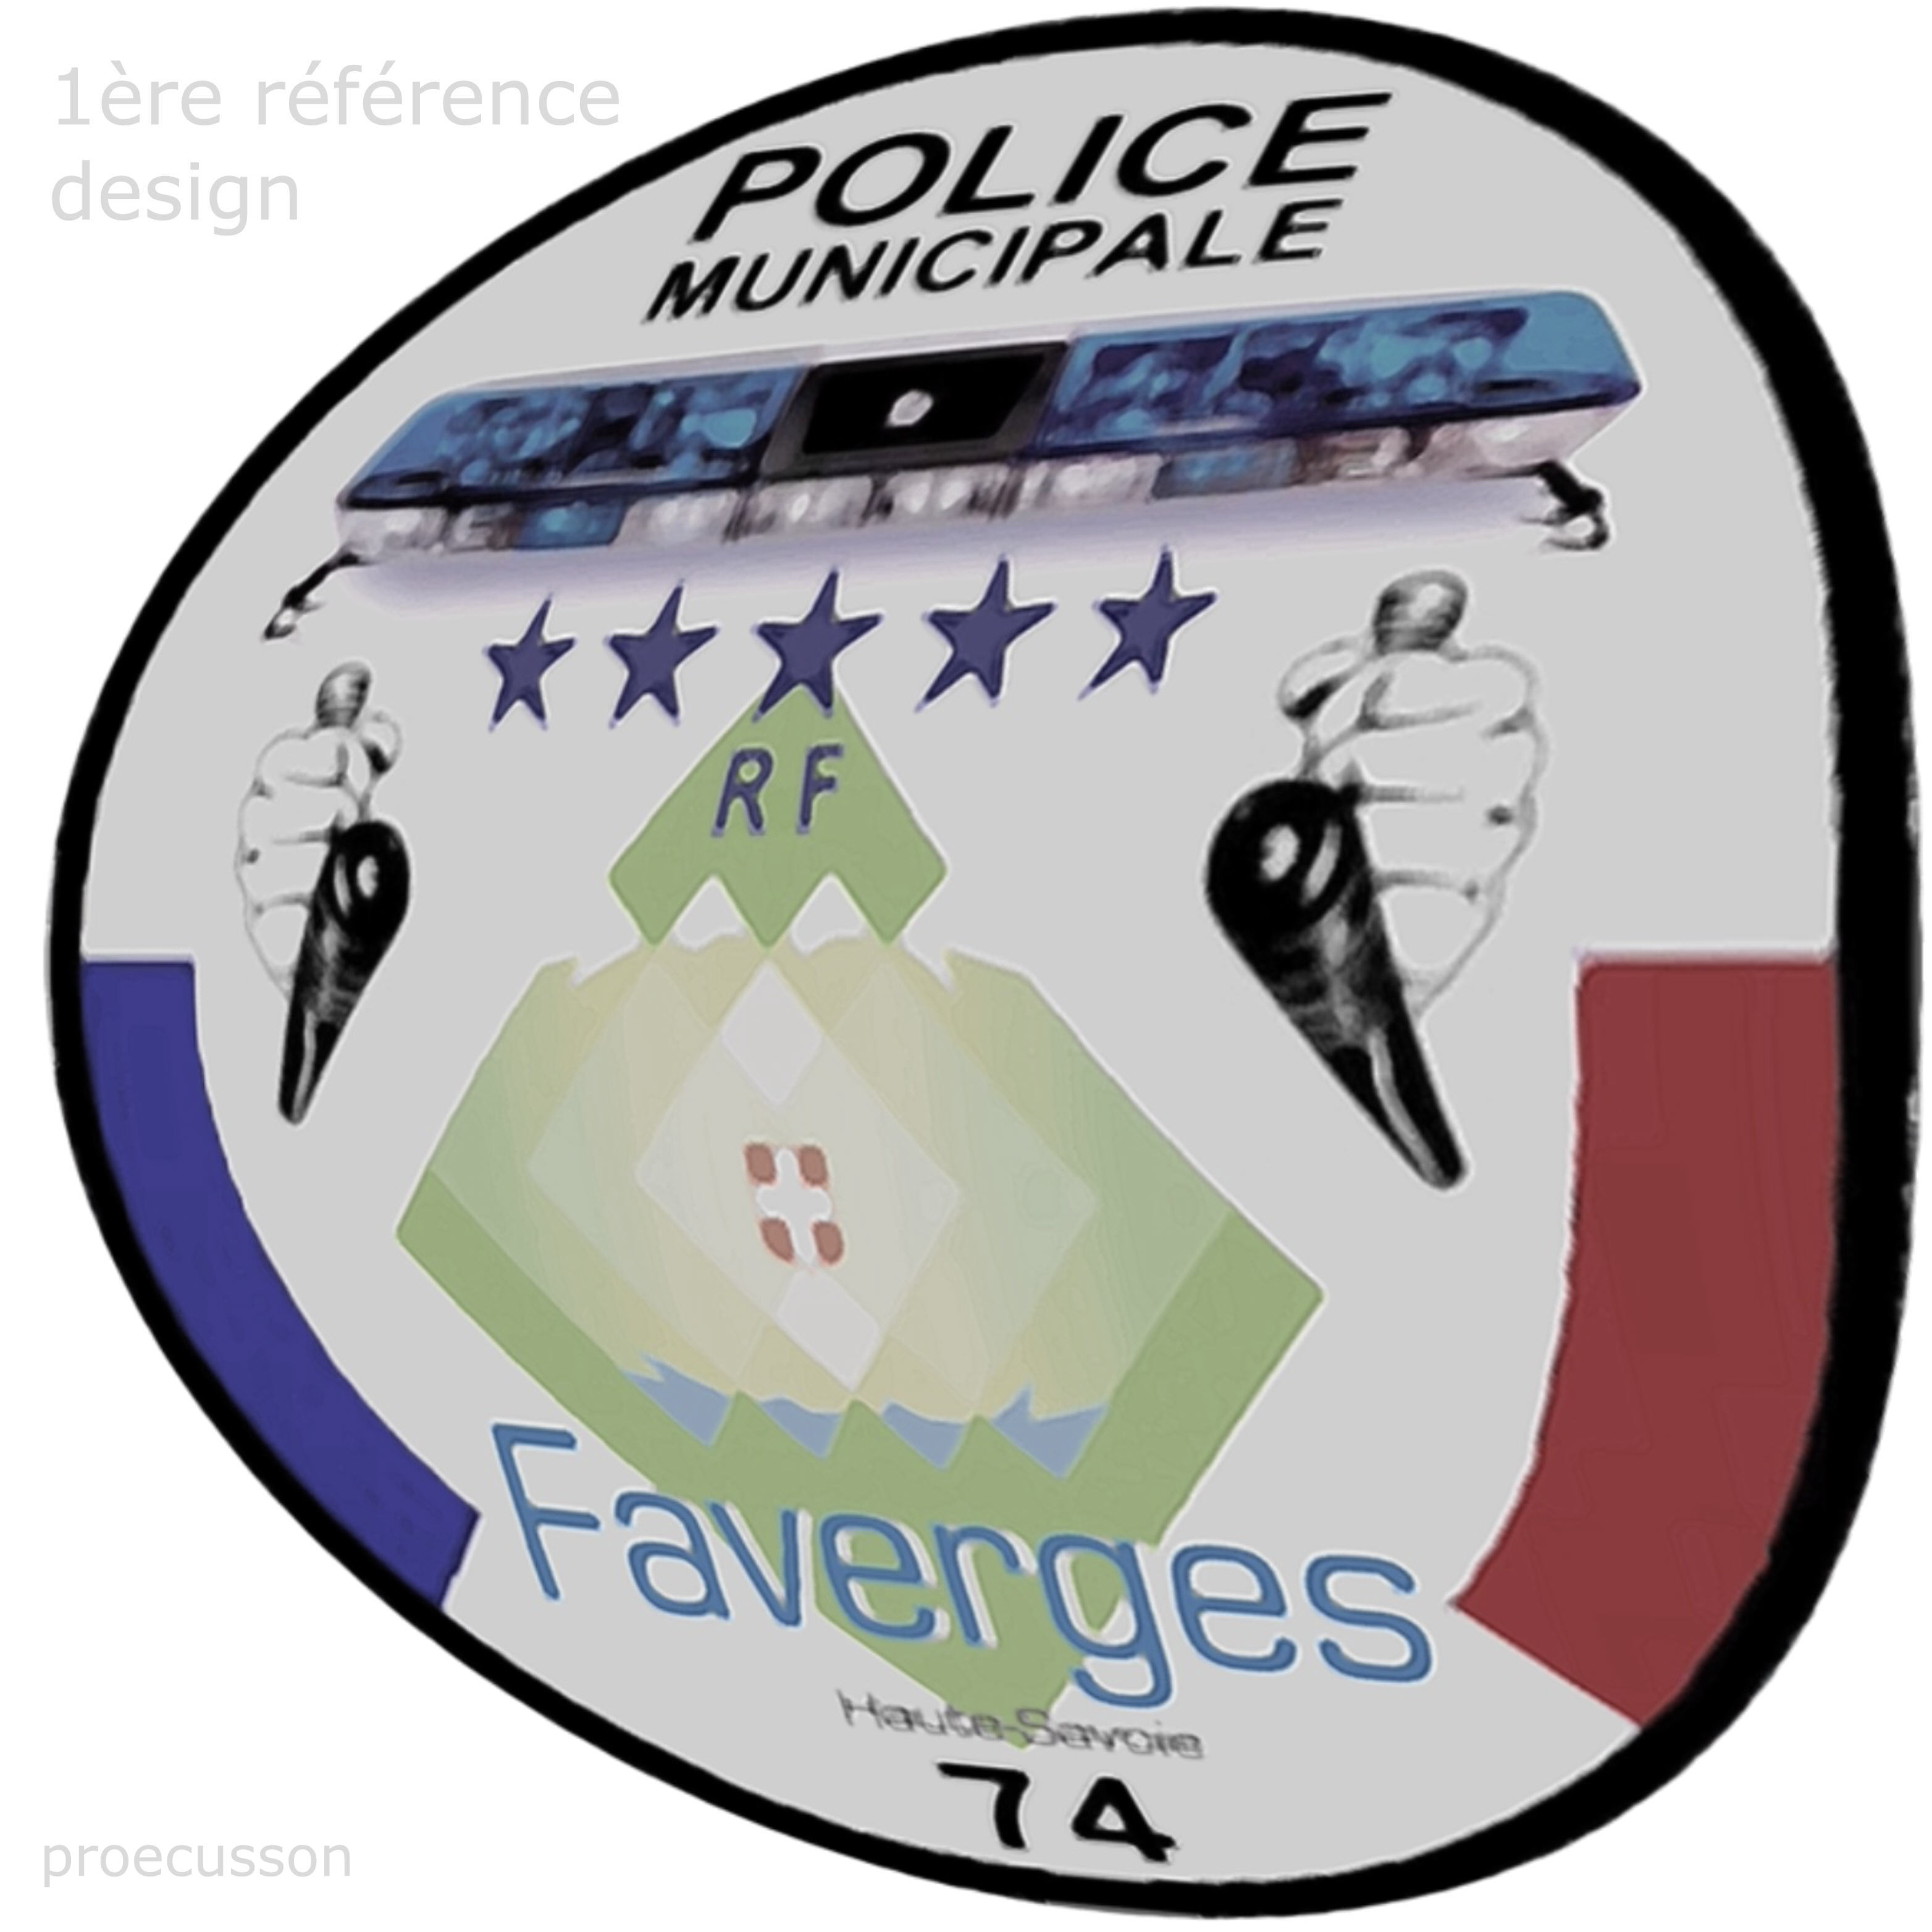 POLICE MUNICIPALE FAVERGES